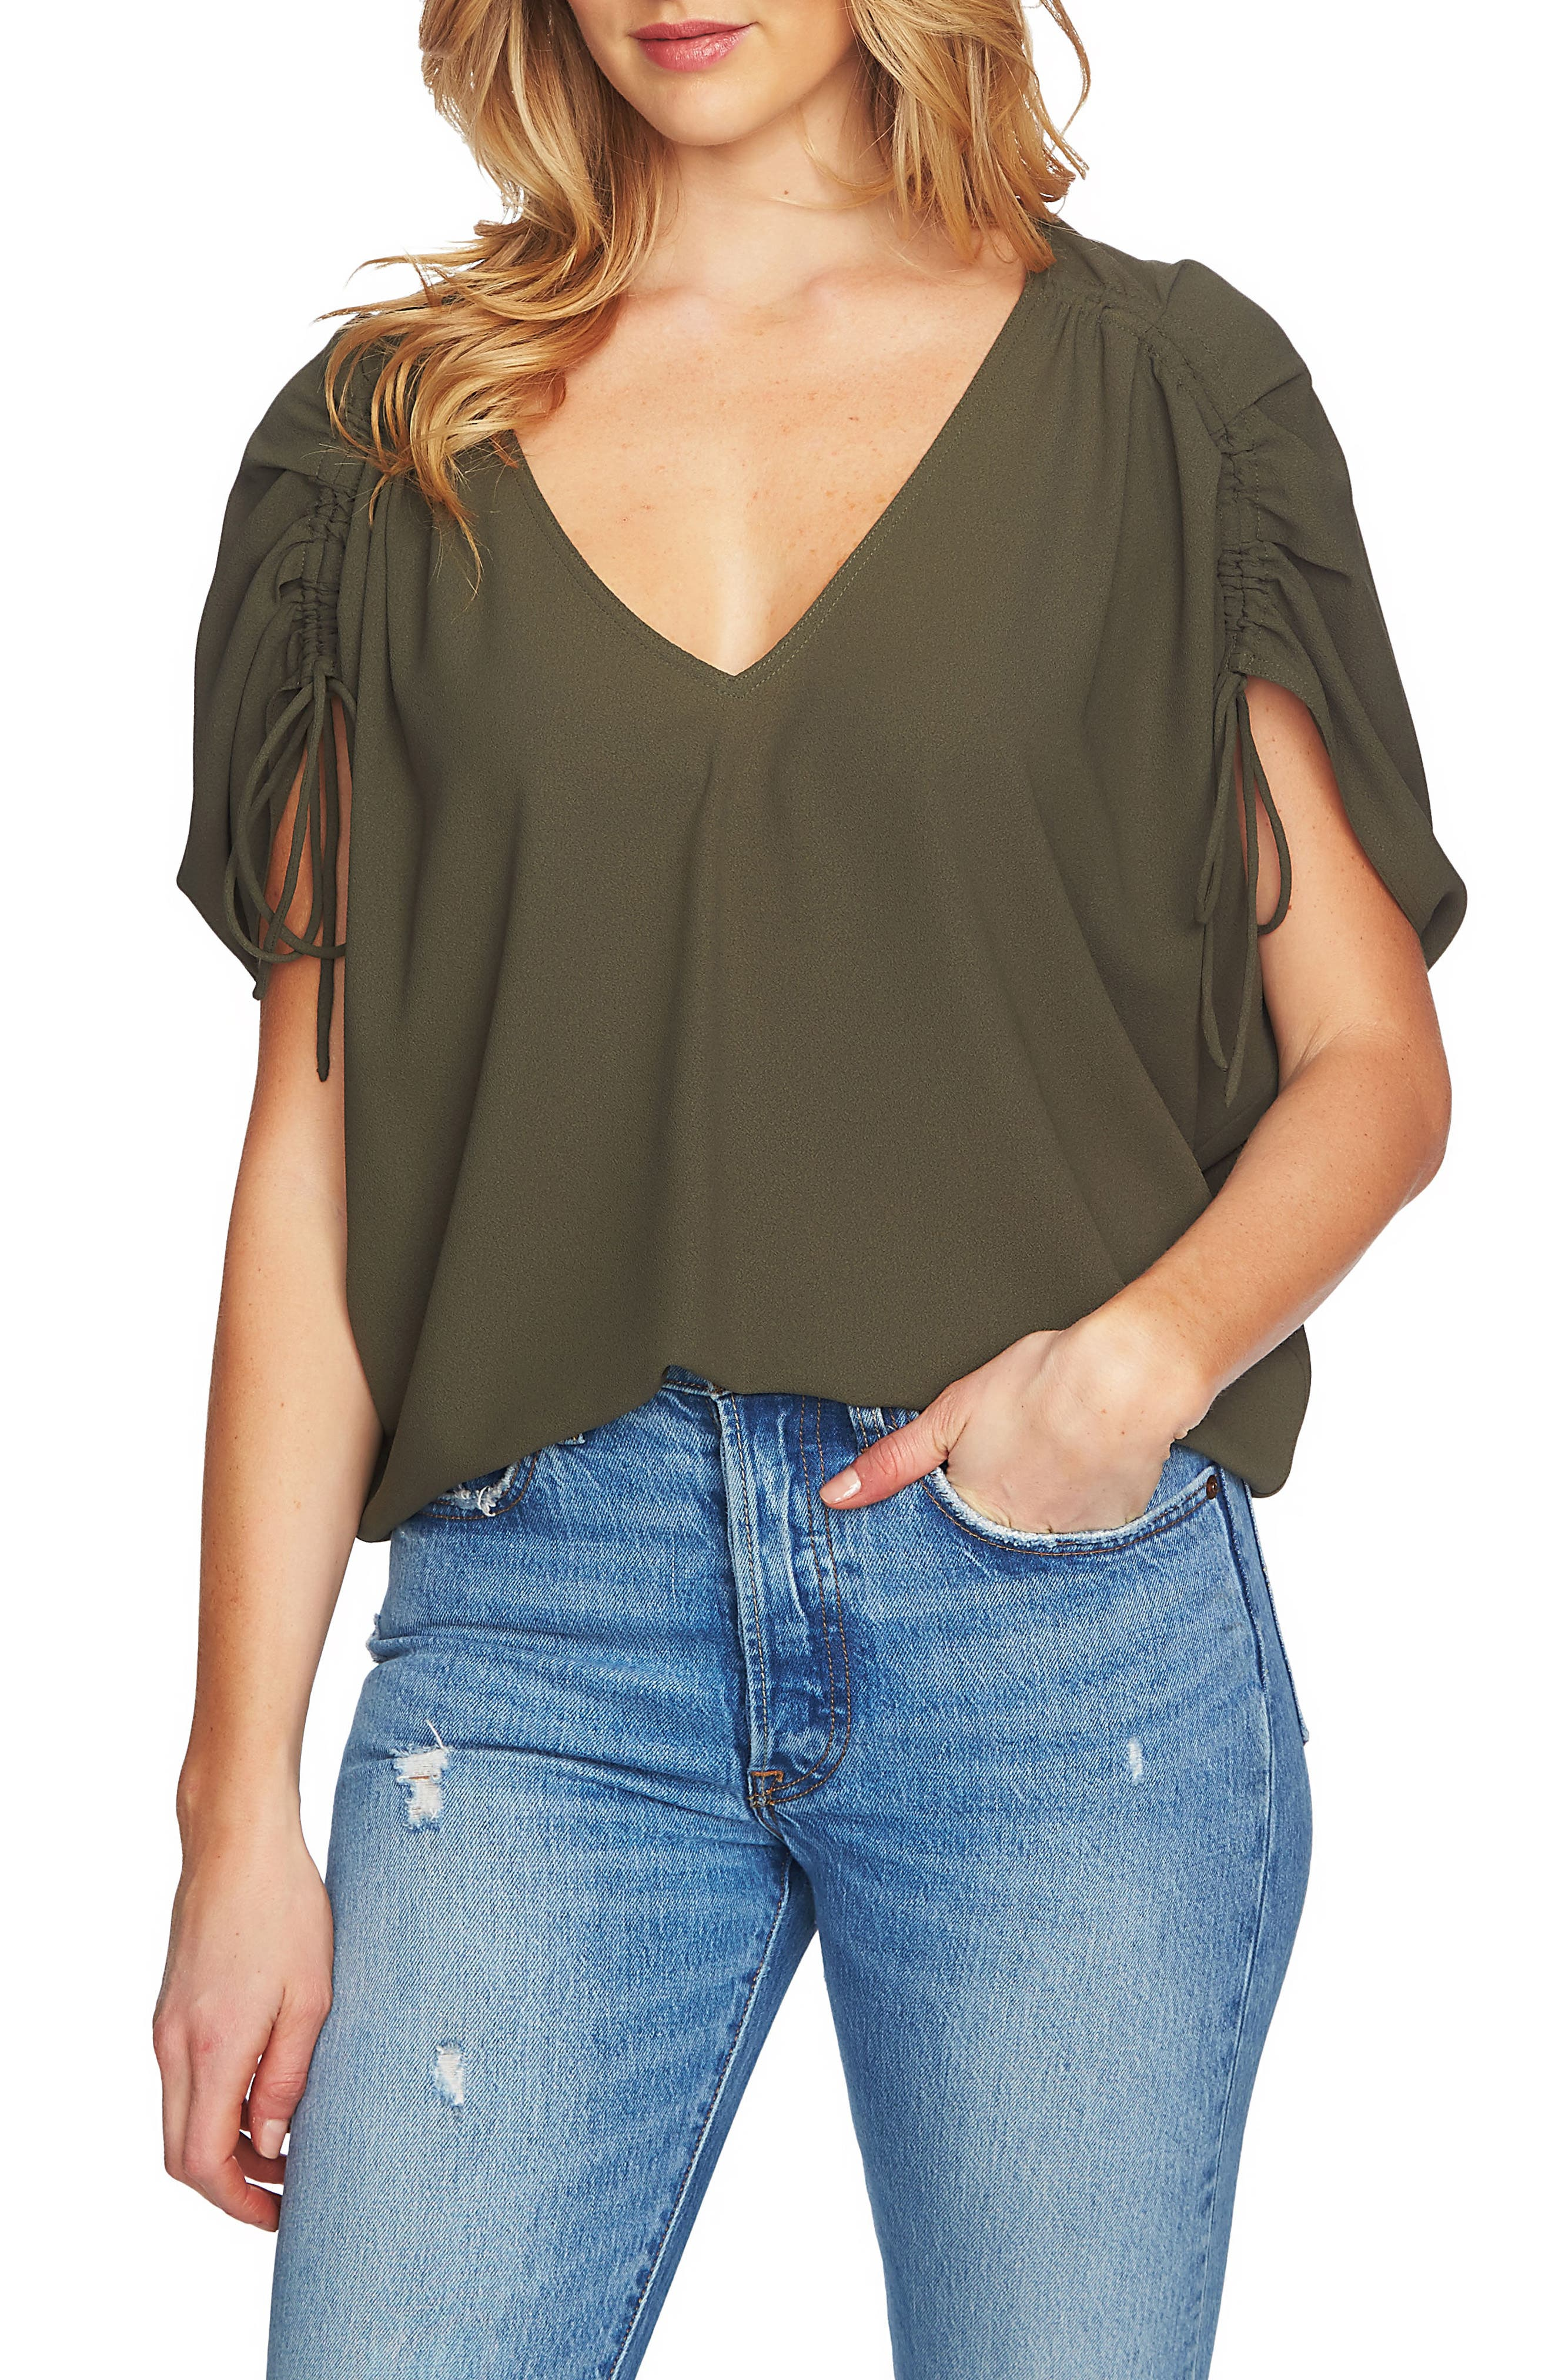 Cinch Sleeve Blouse,                         Main,                         color, 311-Olive Tree